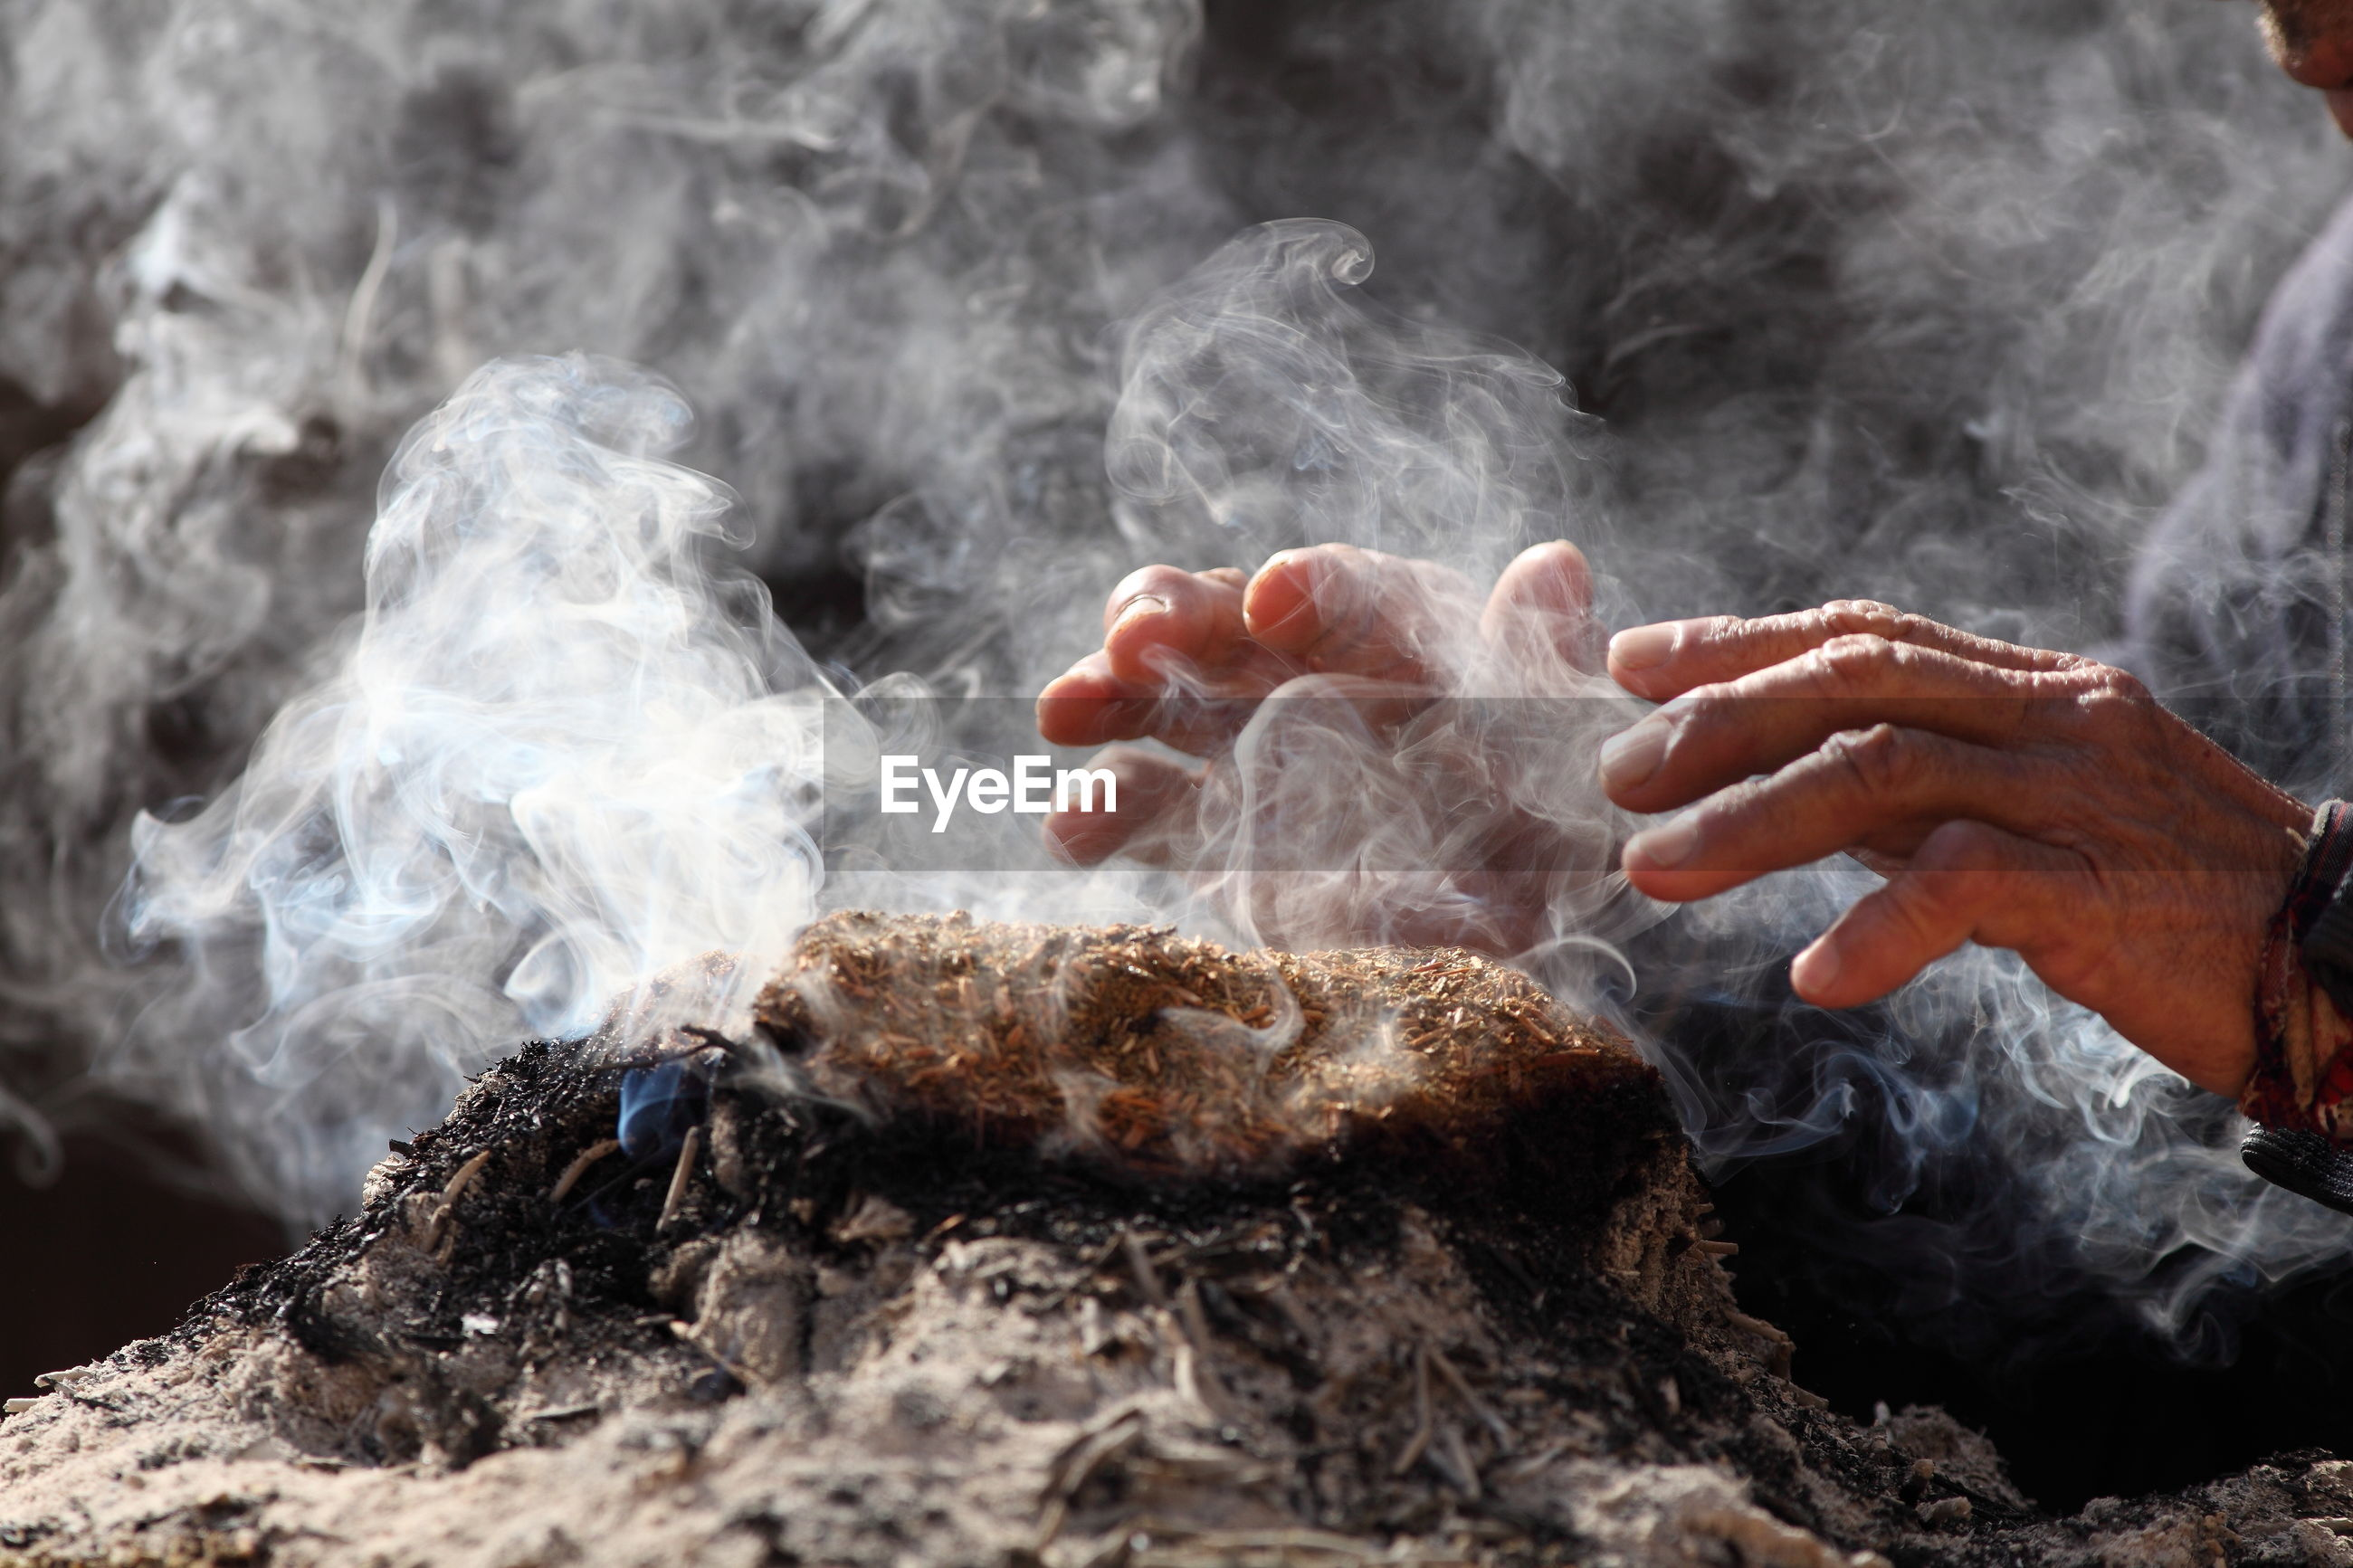 Cropped image of hand over smoke emitting from incense at temple